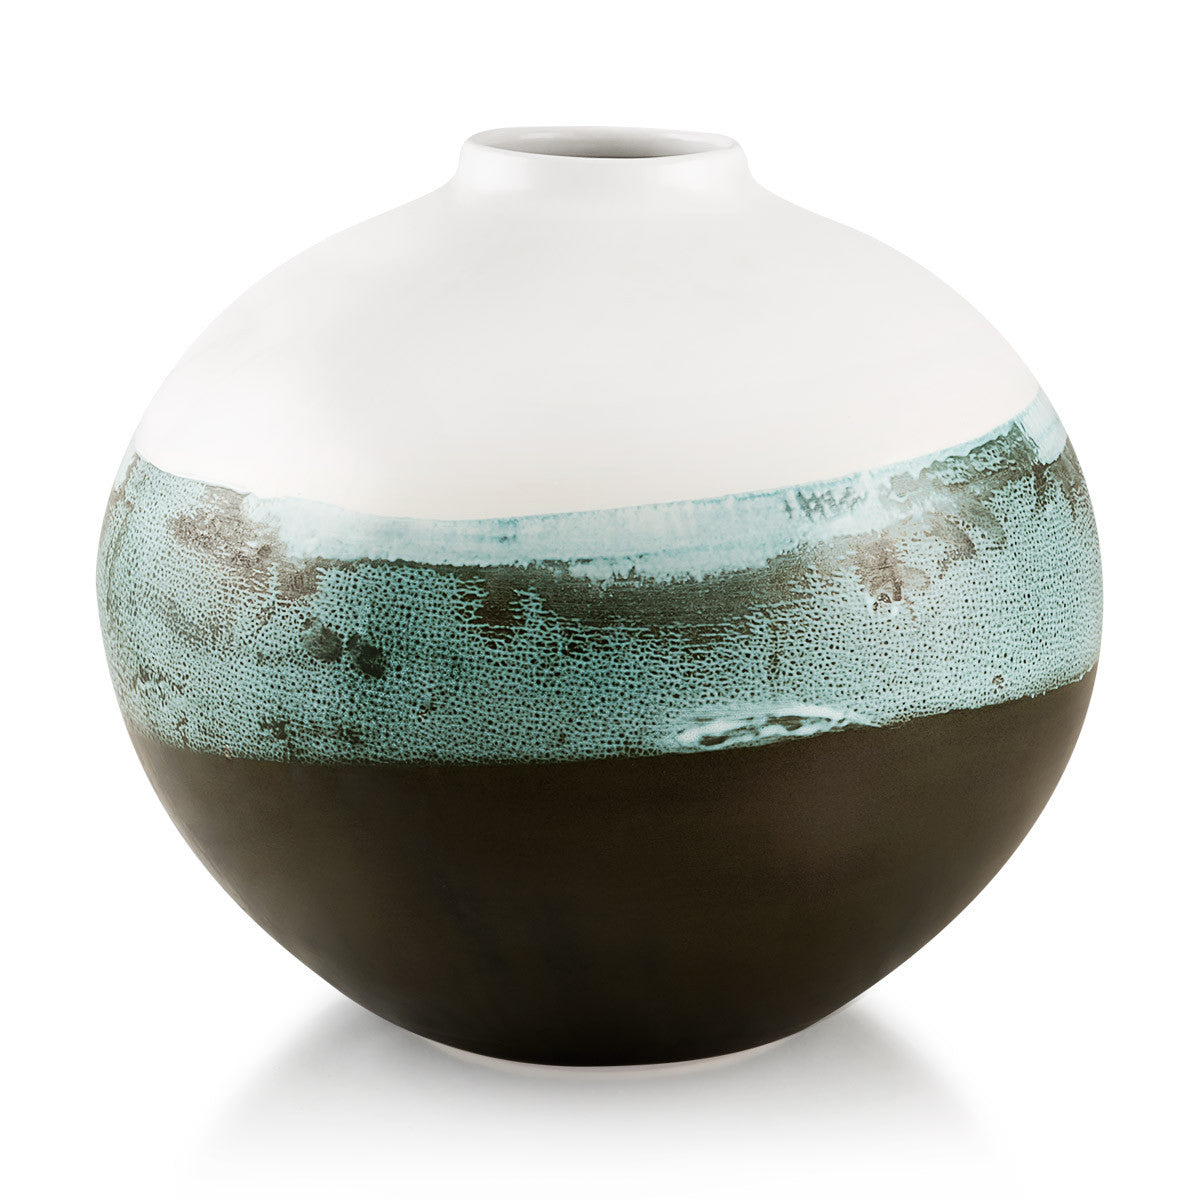 Ceramic oval vase | Reactive glaze